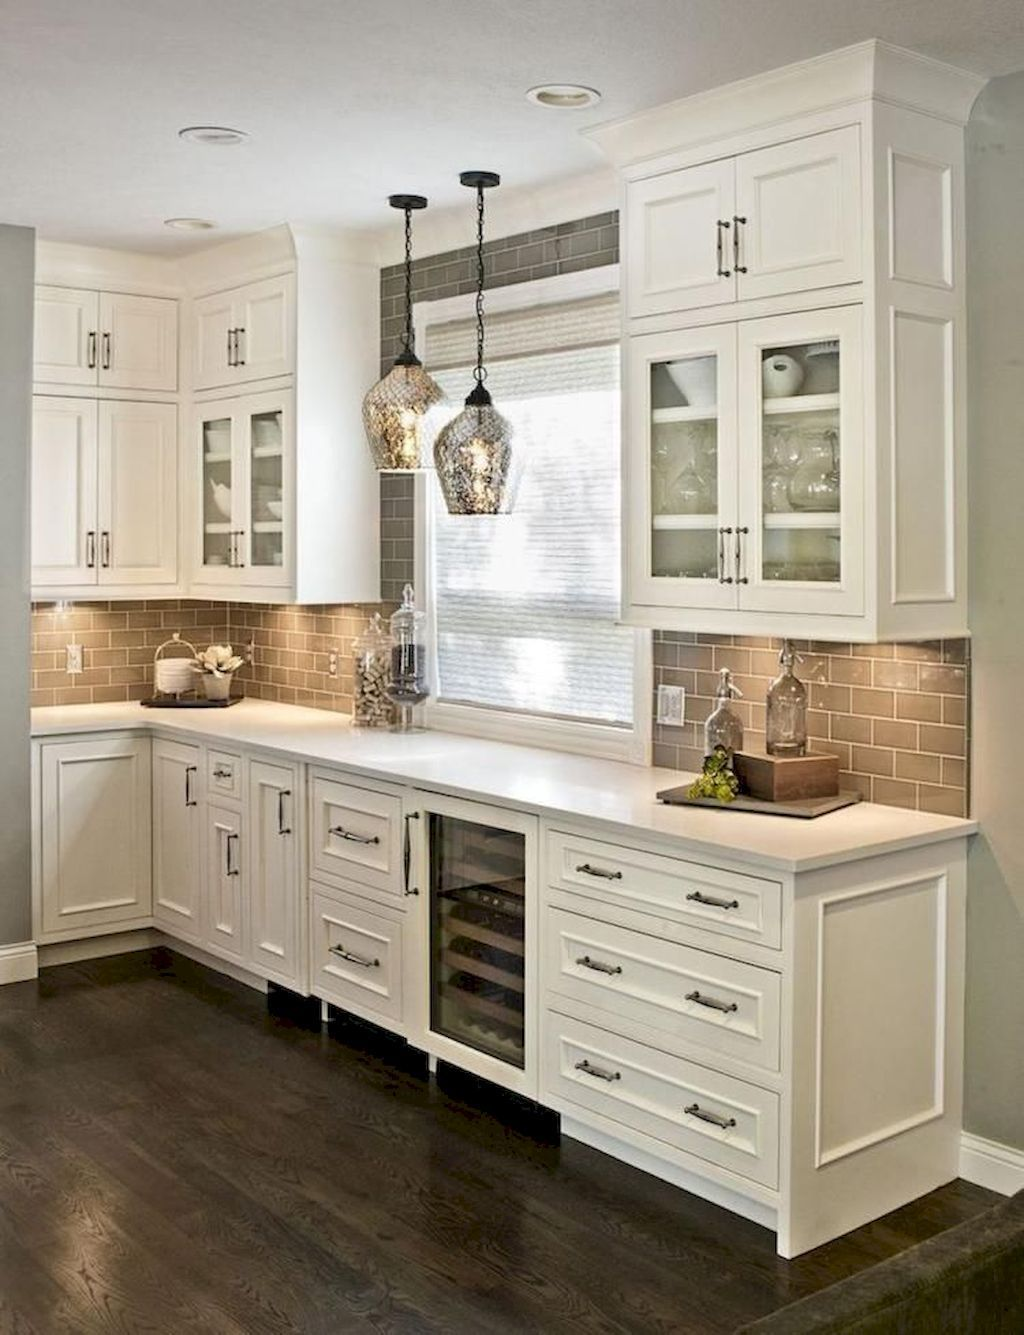 69 modern farmhouse kitchen cabinet makeover design ideas #graykitchencabinets